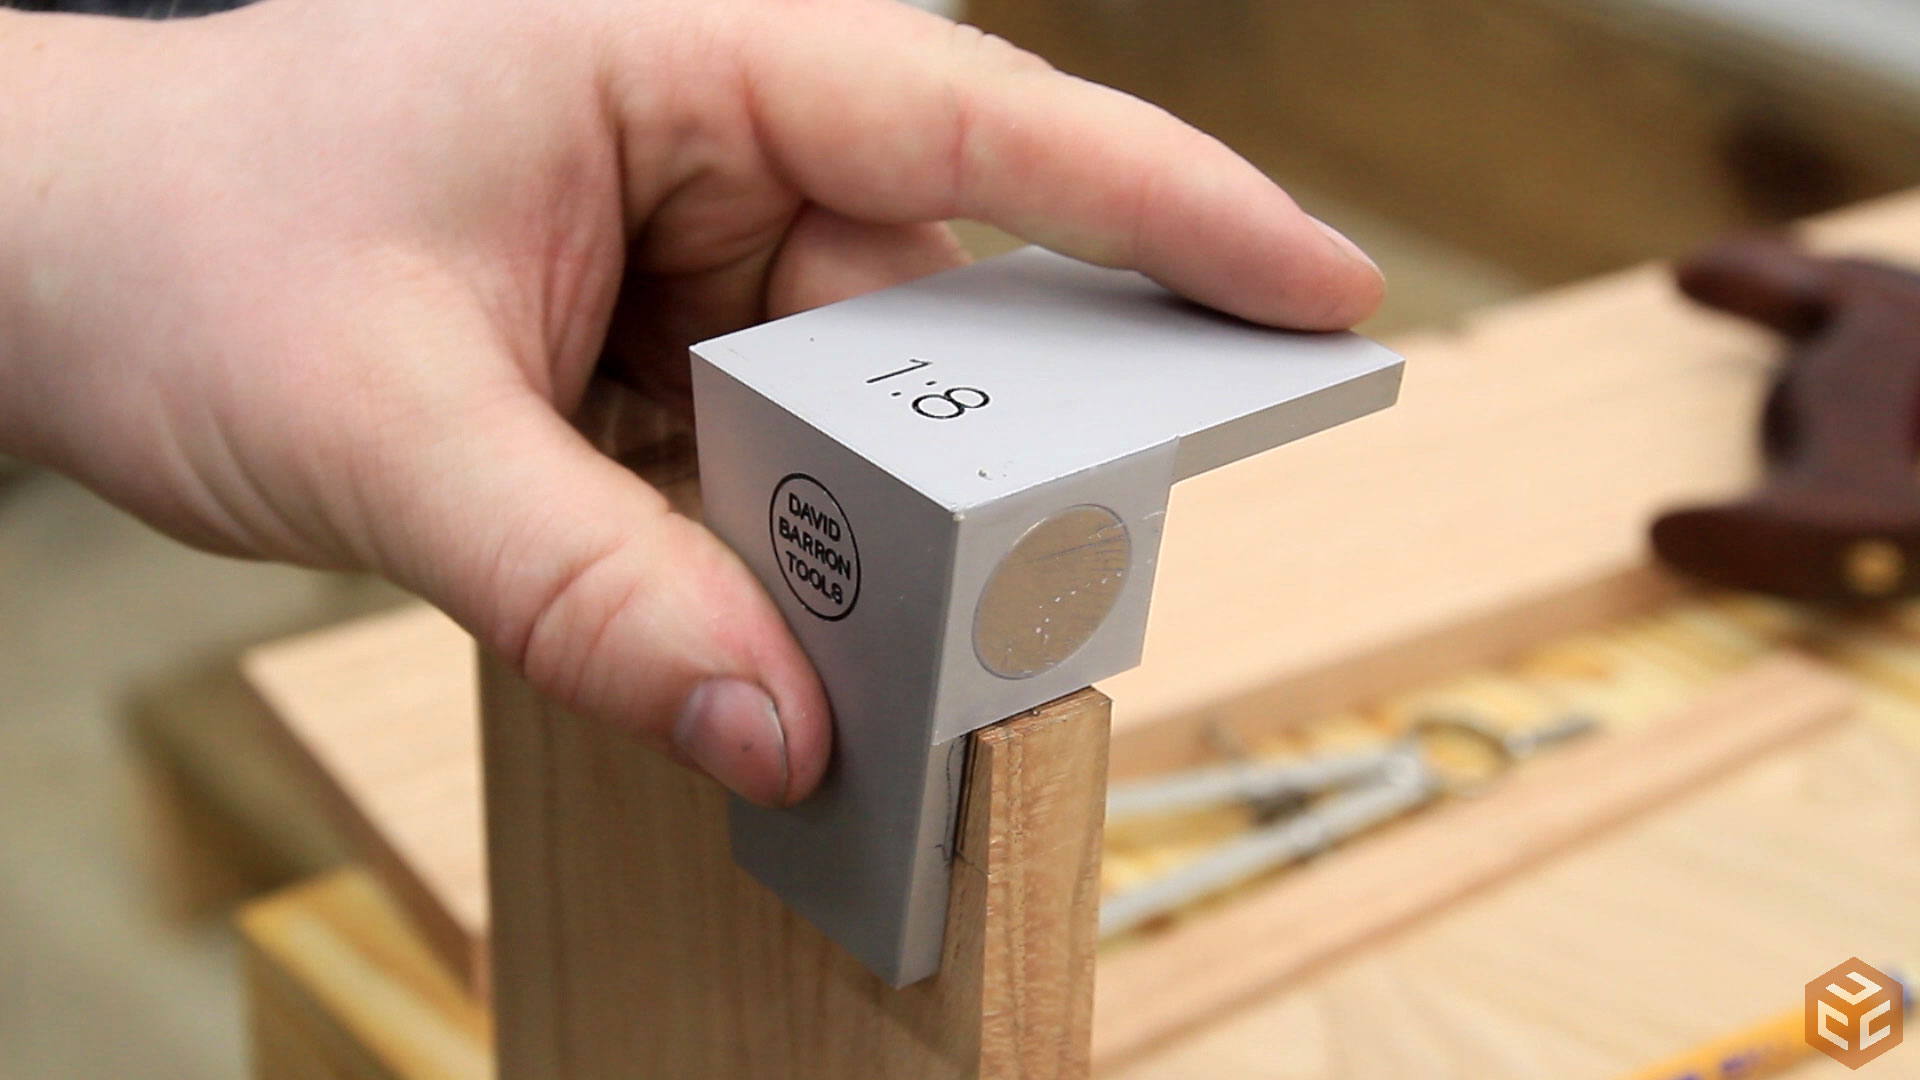 Carpentry Woodworking Tools Dovetail Marker Hand Cut Wood